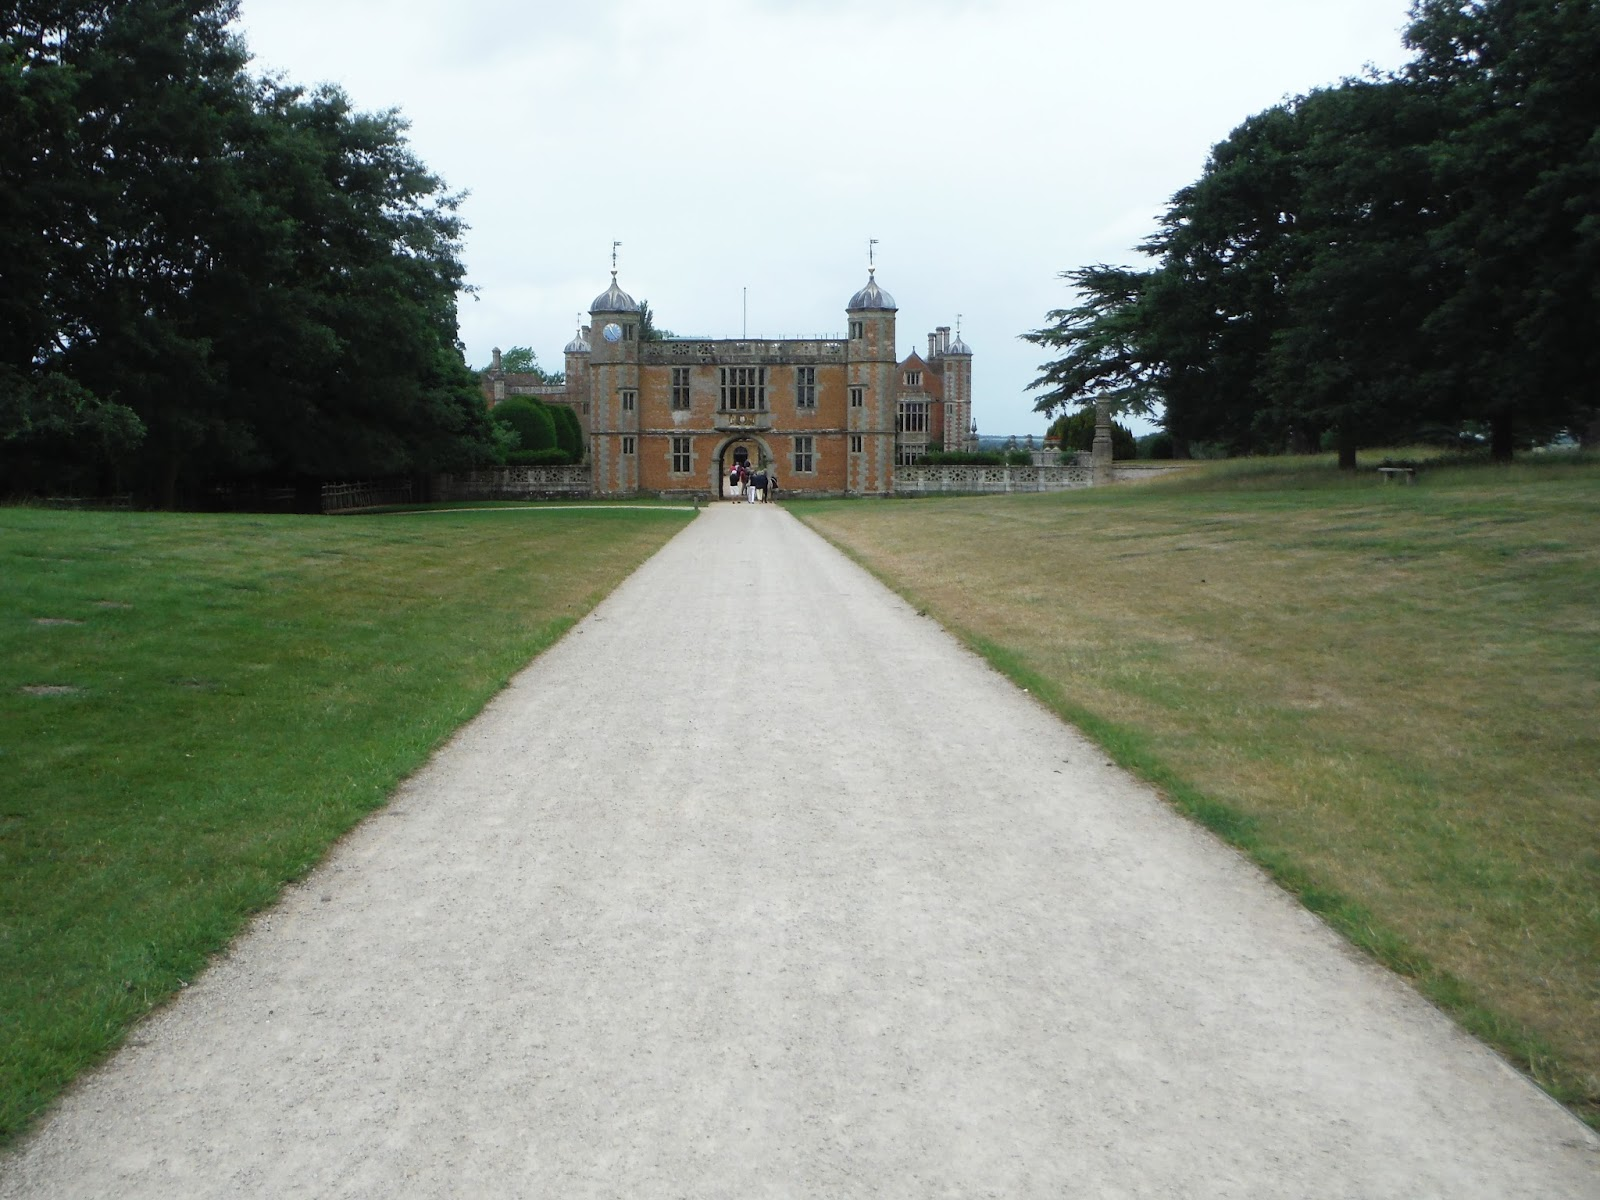 a view of Charlecote Park from the long driveway